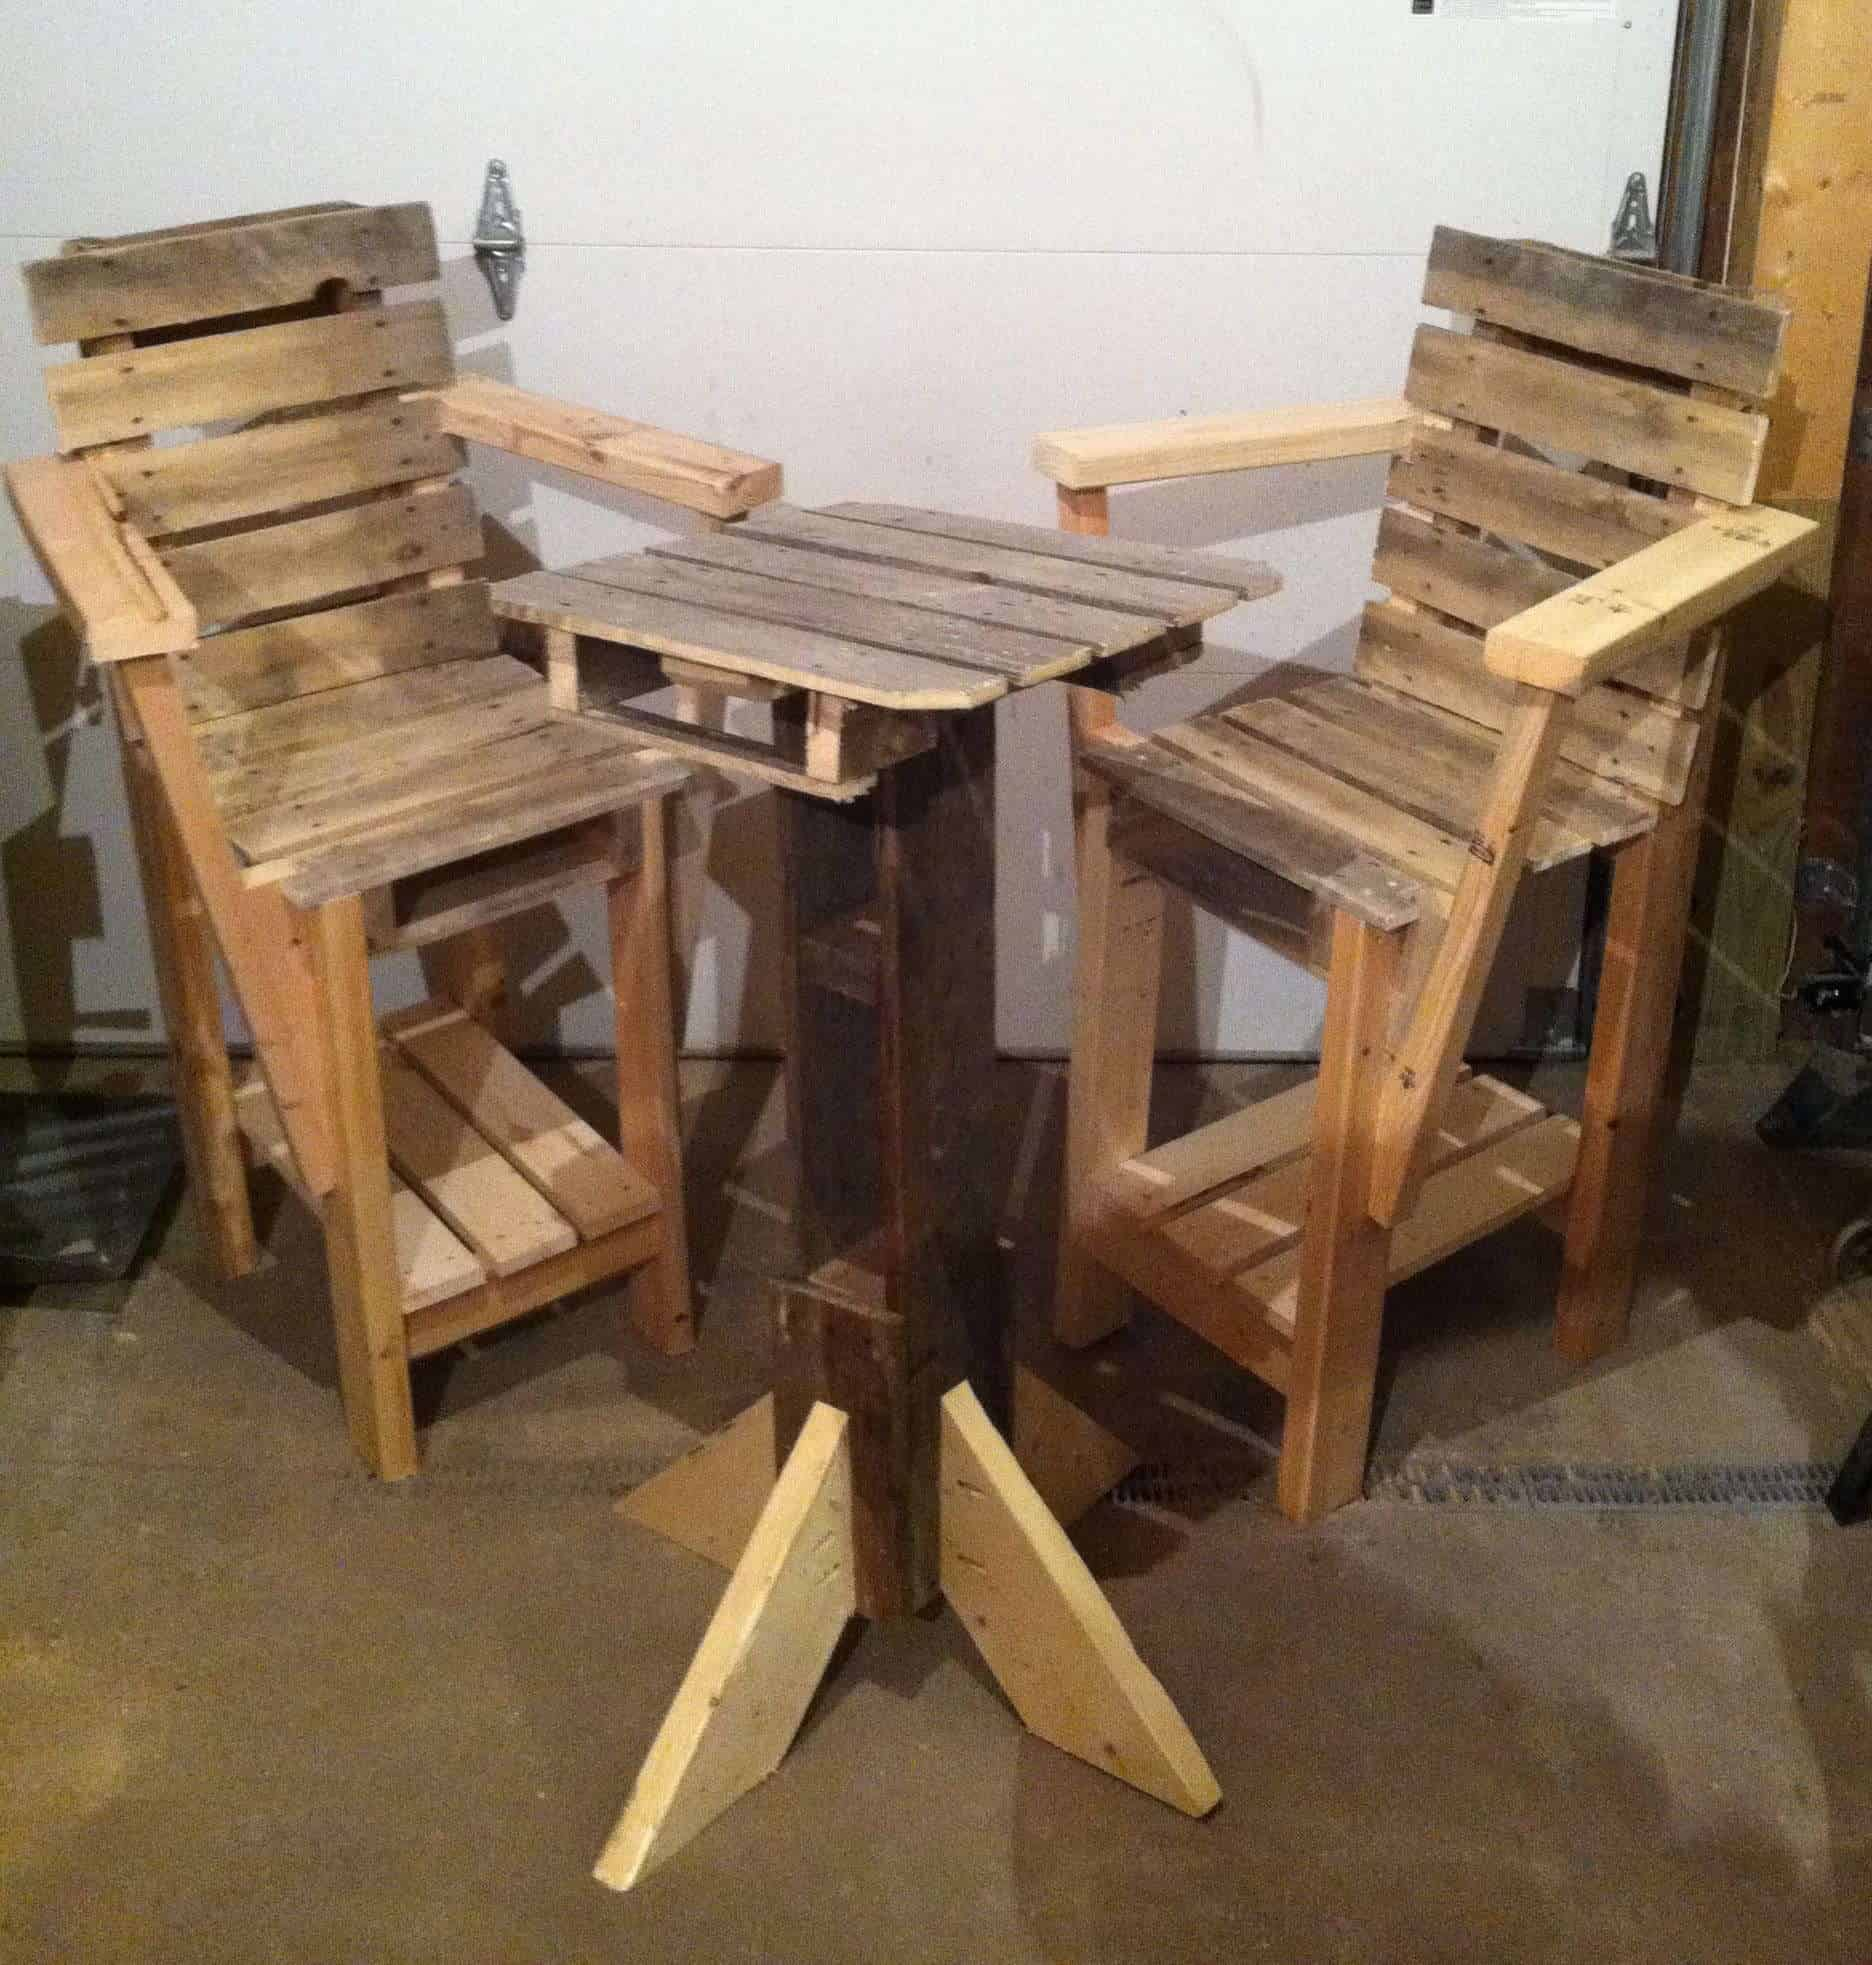 pallet wood chair revolving price in kolkata pallets furniture  1001